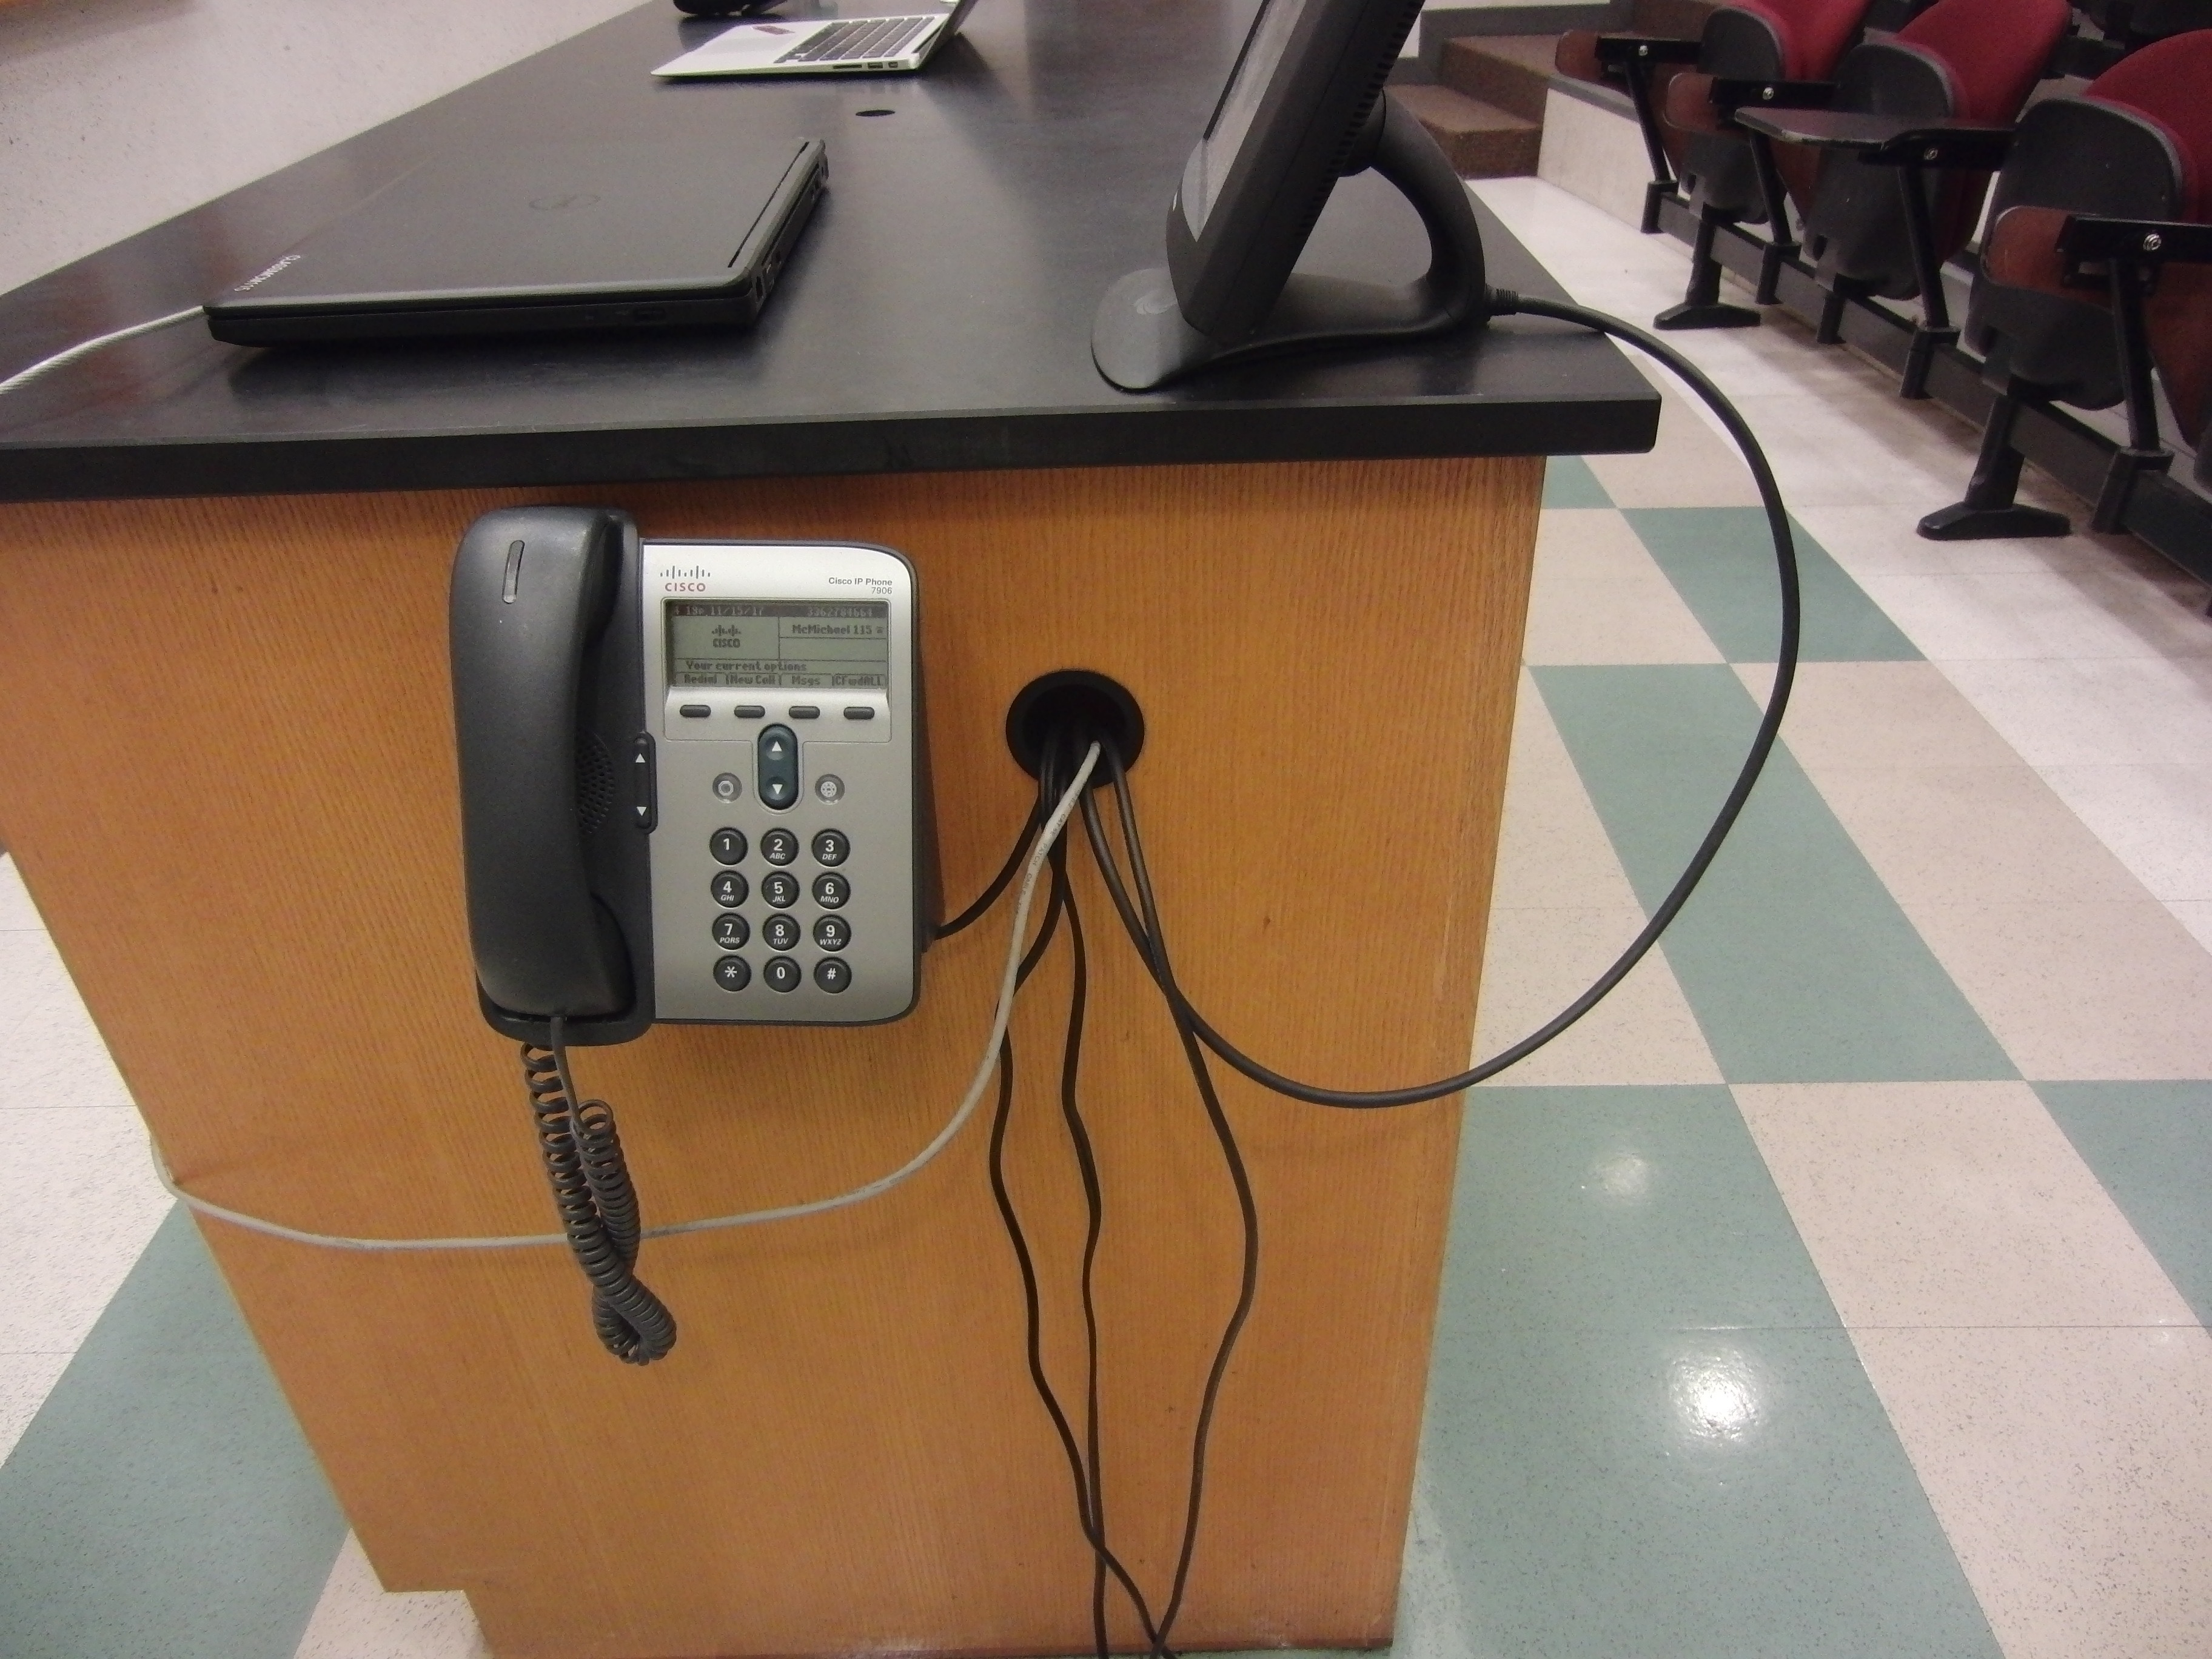 Photo of the locations for the cables available at the instructor's station and the classroom phone that is also available at the station